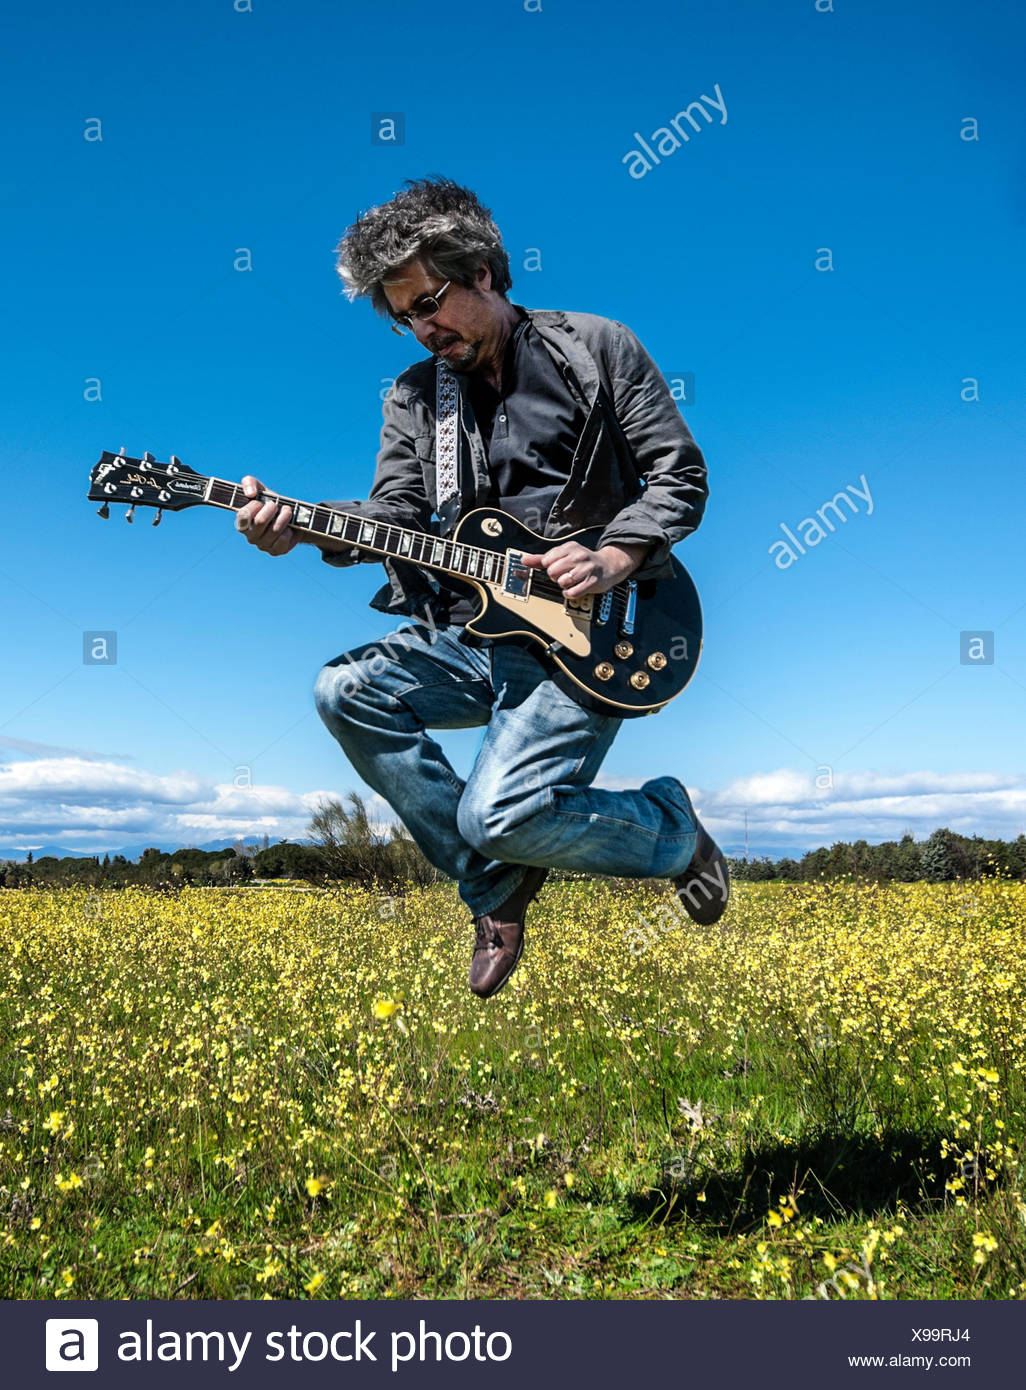 Man in leather jacket playing guitar - Stock Image